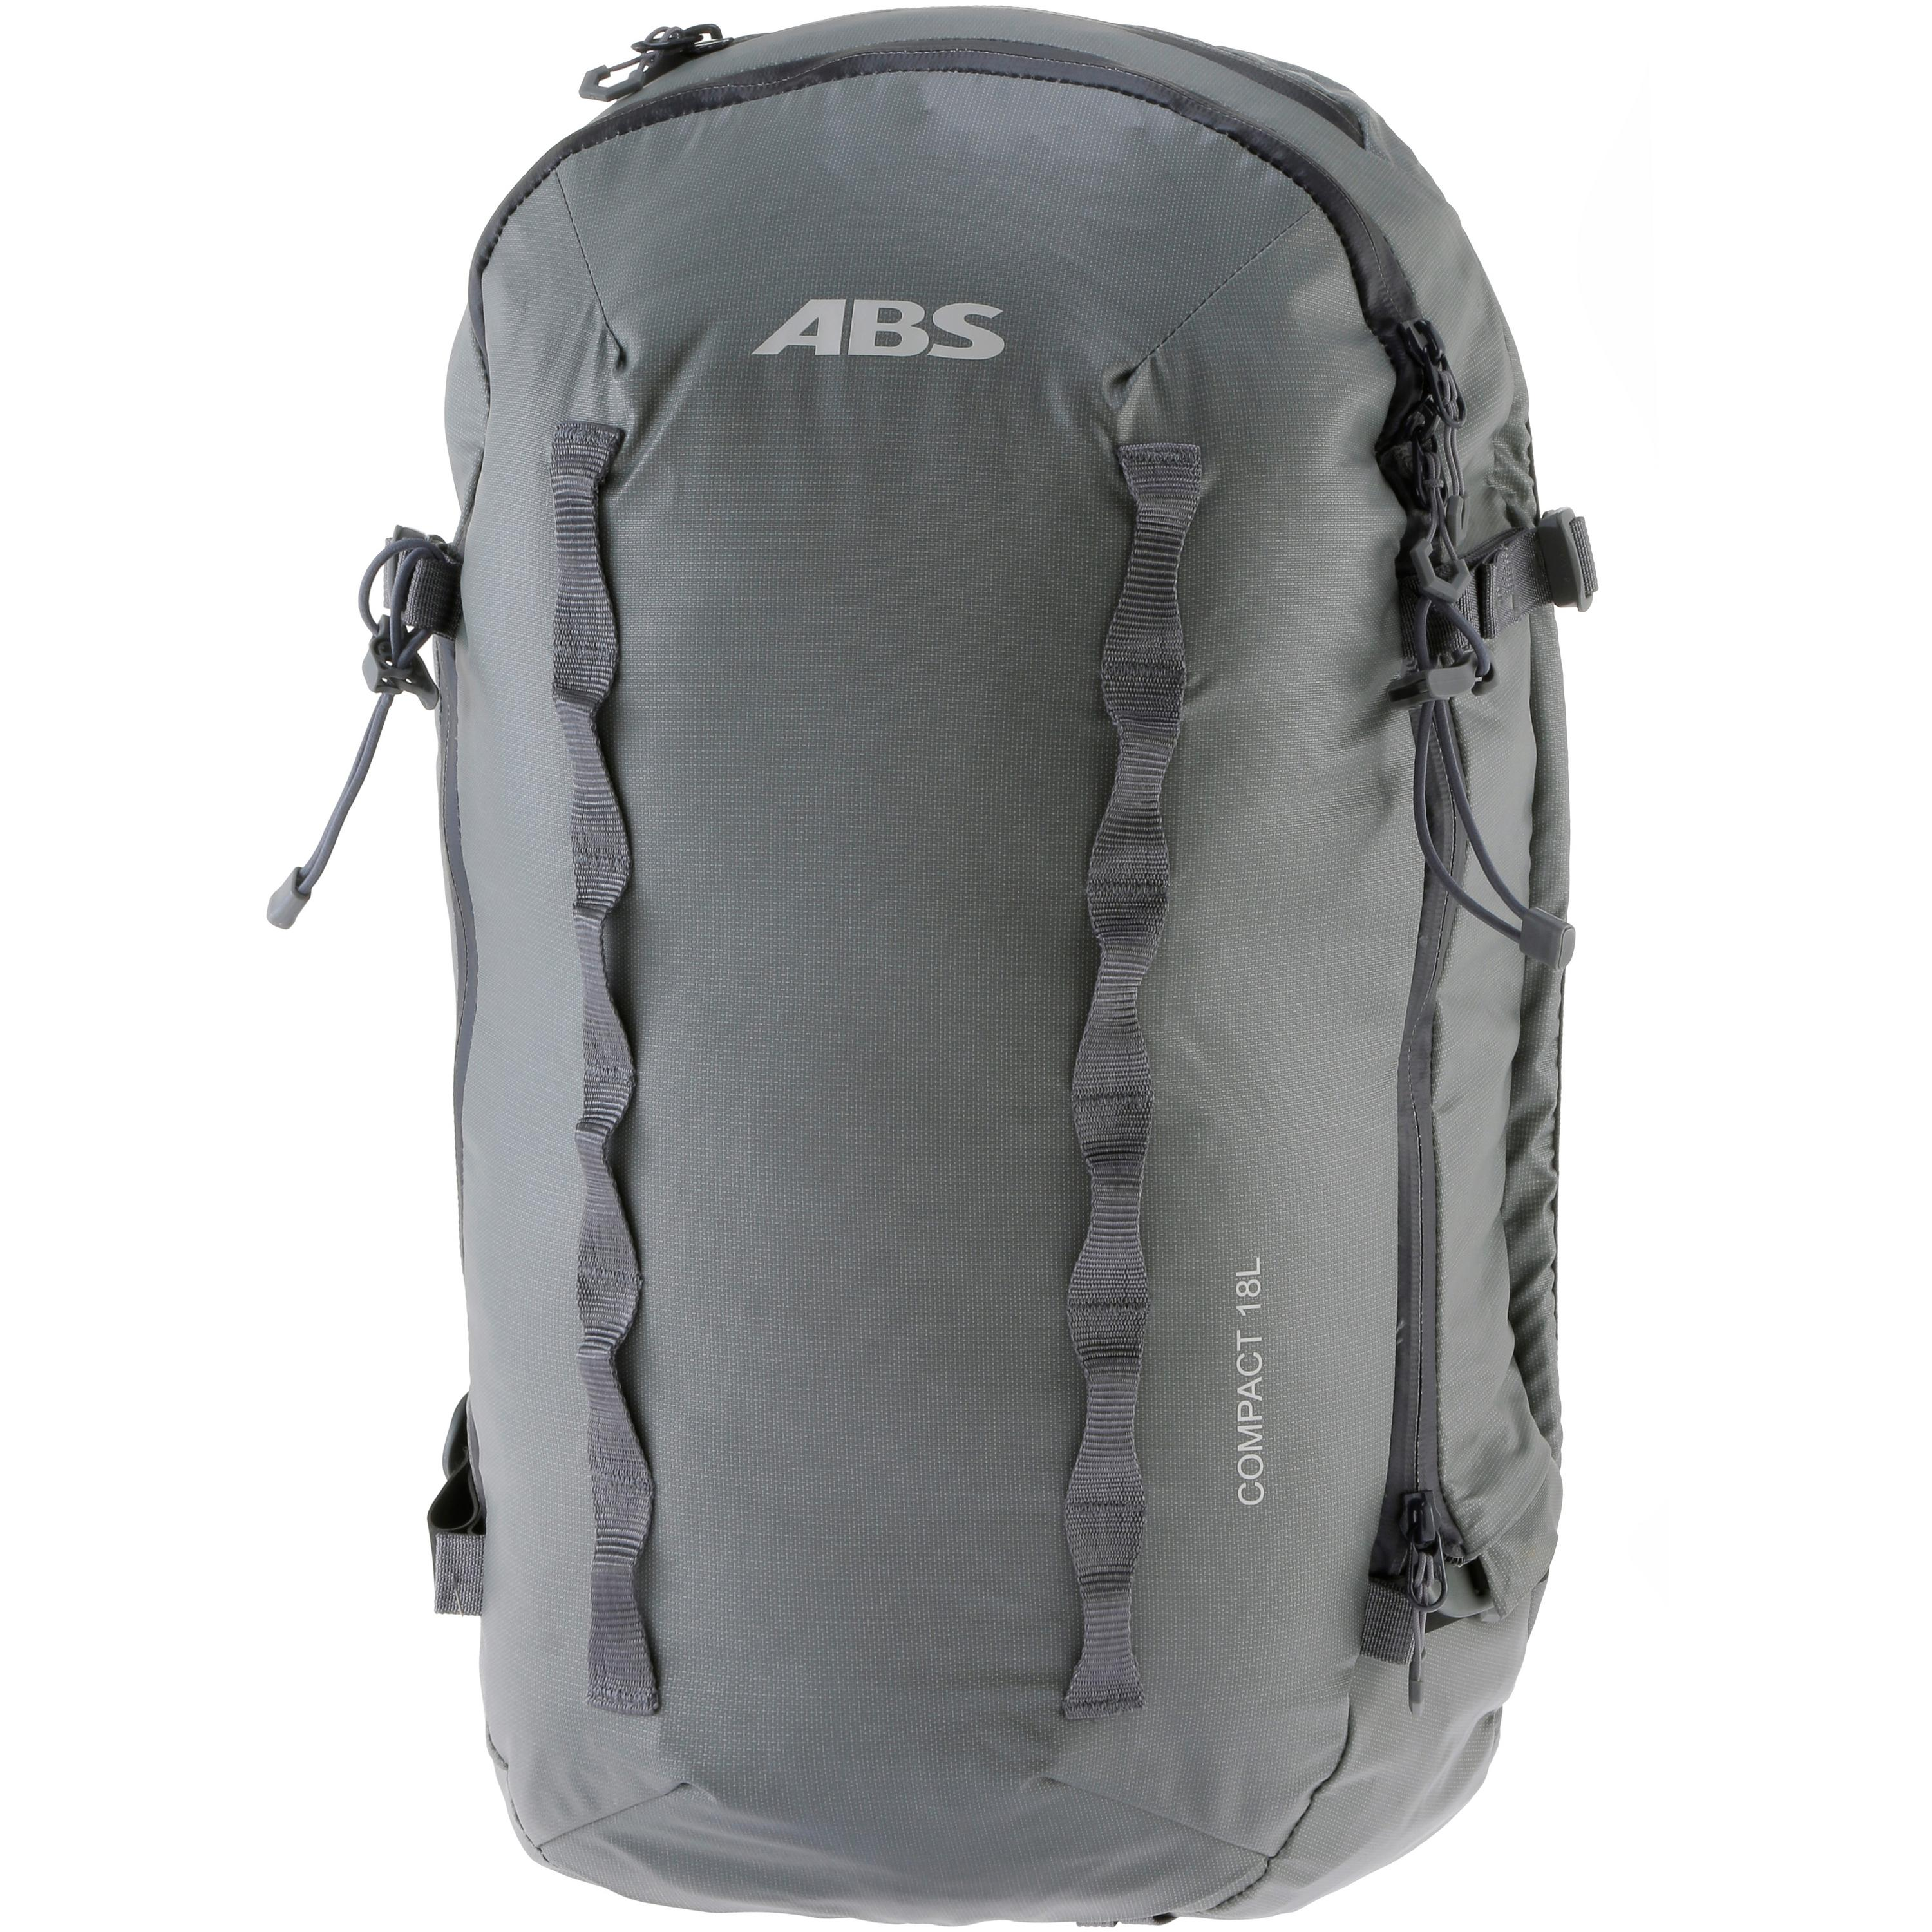 Image of ABS P.RIDE Compact 18 Zip-On